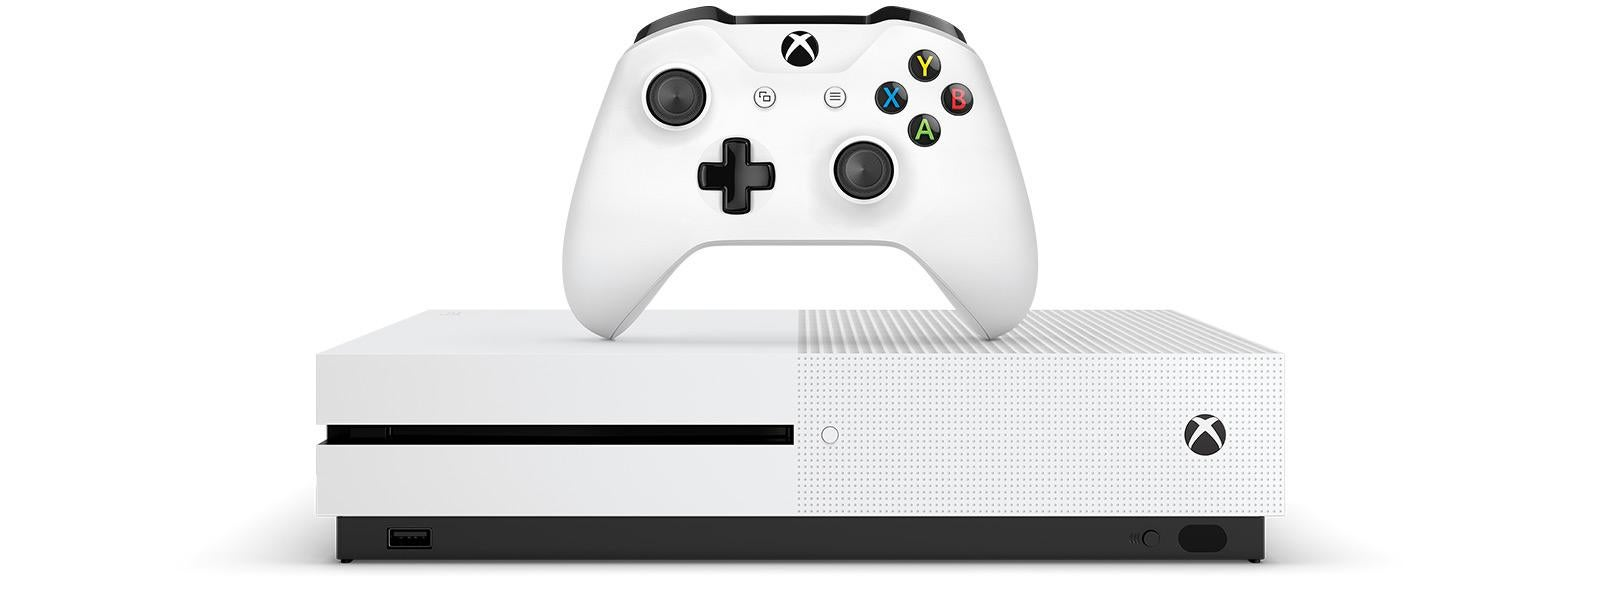 Best Cyber Monday and Black Friday UK console deals 2018: PS4, Xbox